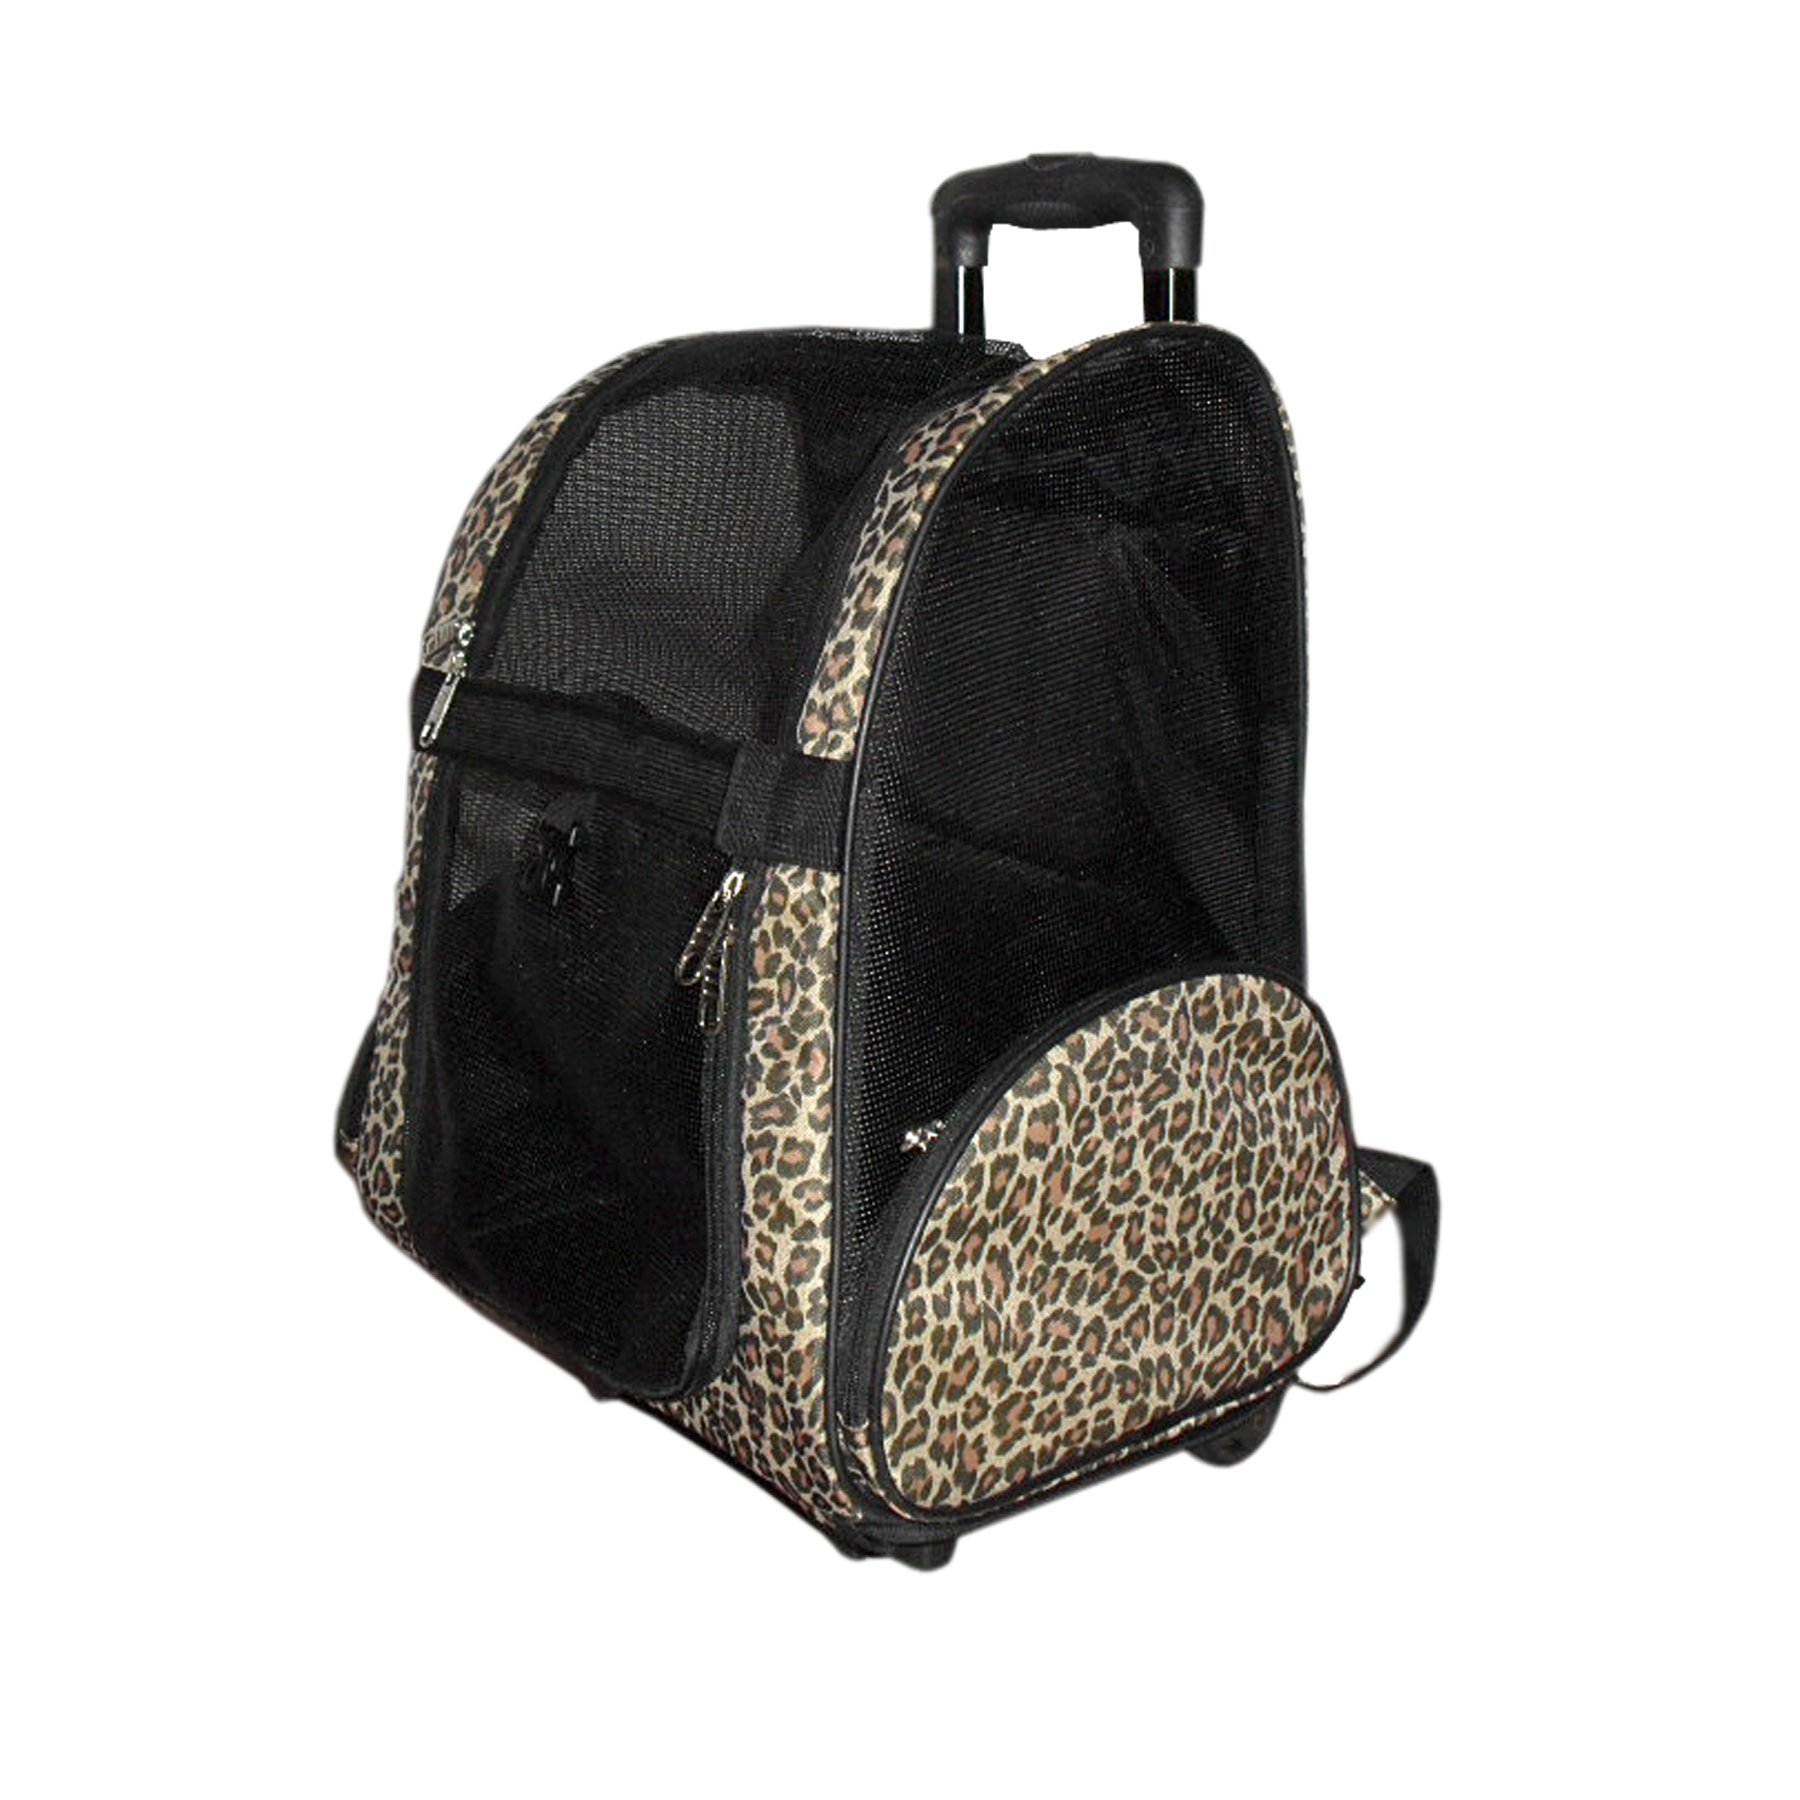 Animal Airplane Travel Carrier on Wheel, 14-Inch by 10-Inch by 19-Inch, Leopard Print